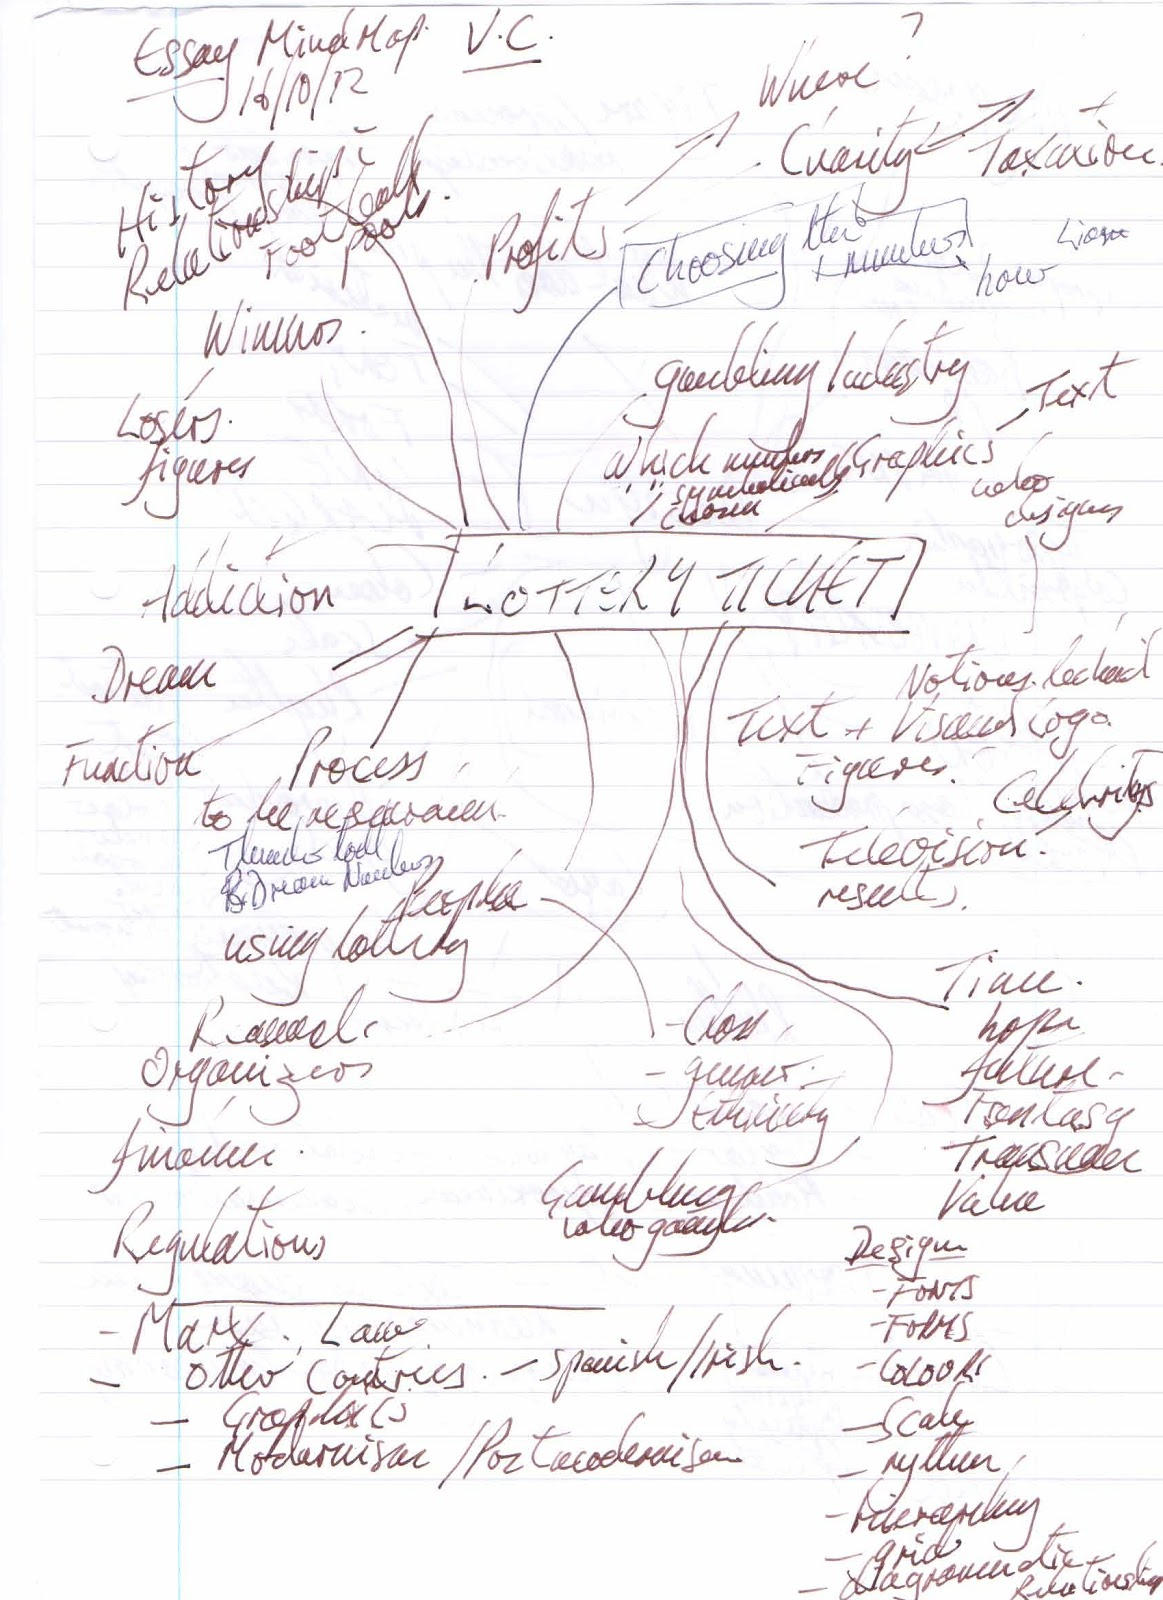 essay mind map norman s visual culture at uwe uwe visual culture  norman s visual culture at uwe uwe visual culture lottery ticket ideas for the essay in essay mind map